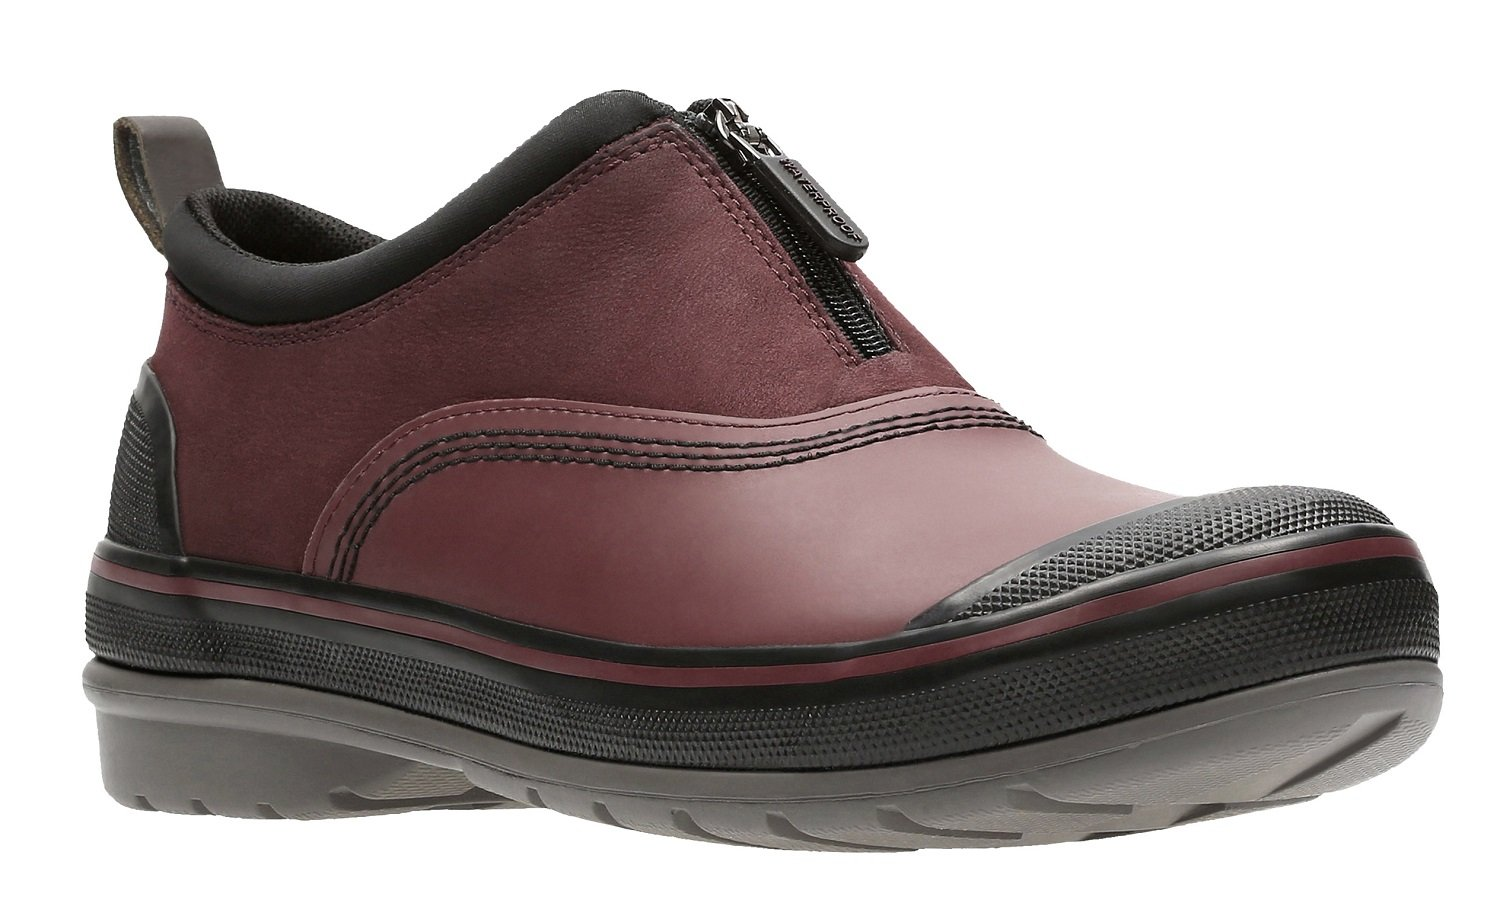 CLARKS Women's Muckers Trail Rain Shoe B071ZRL9ZV 6 B(M) US|Burgundy